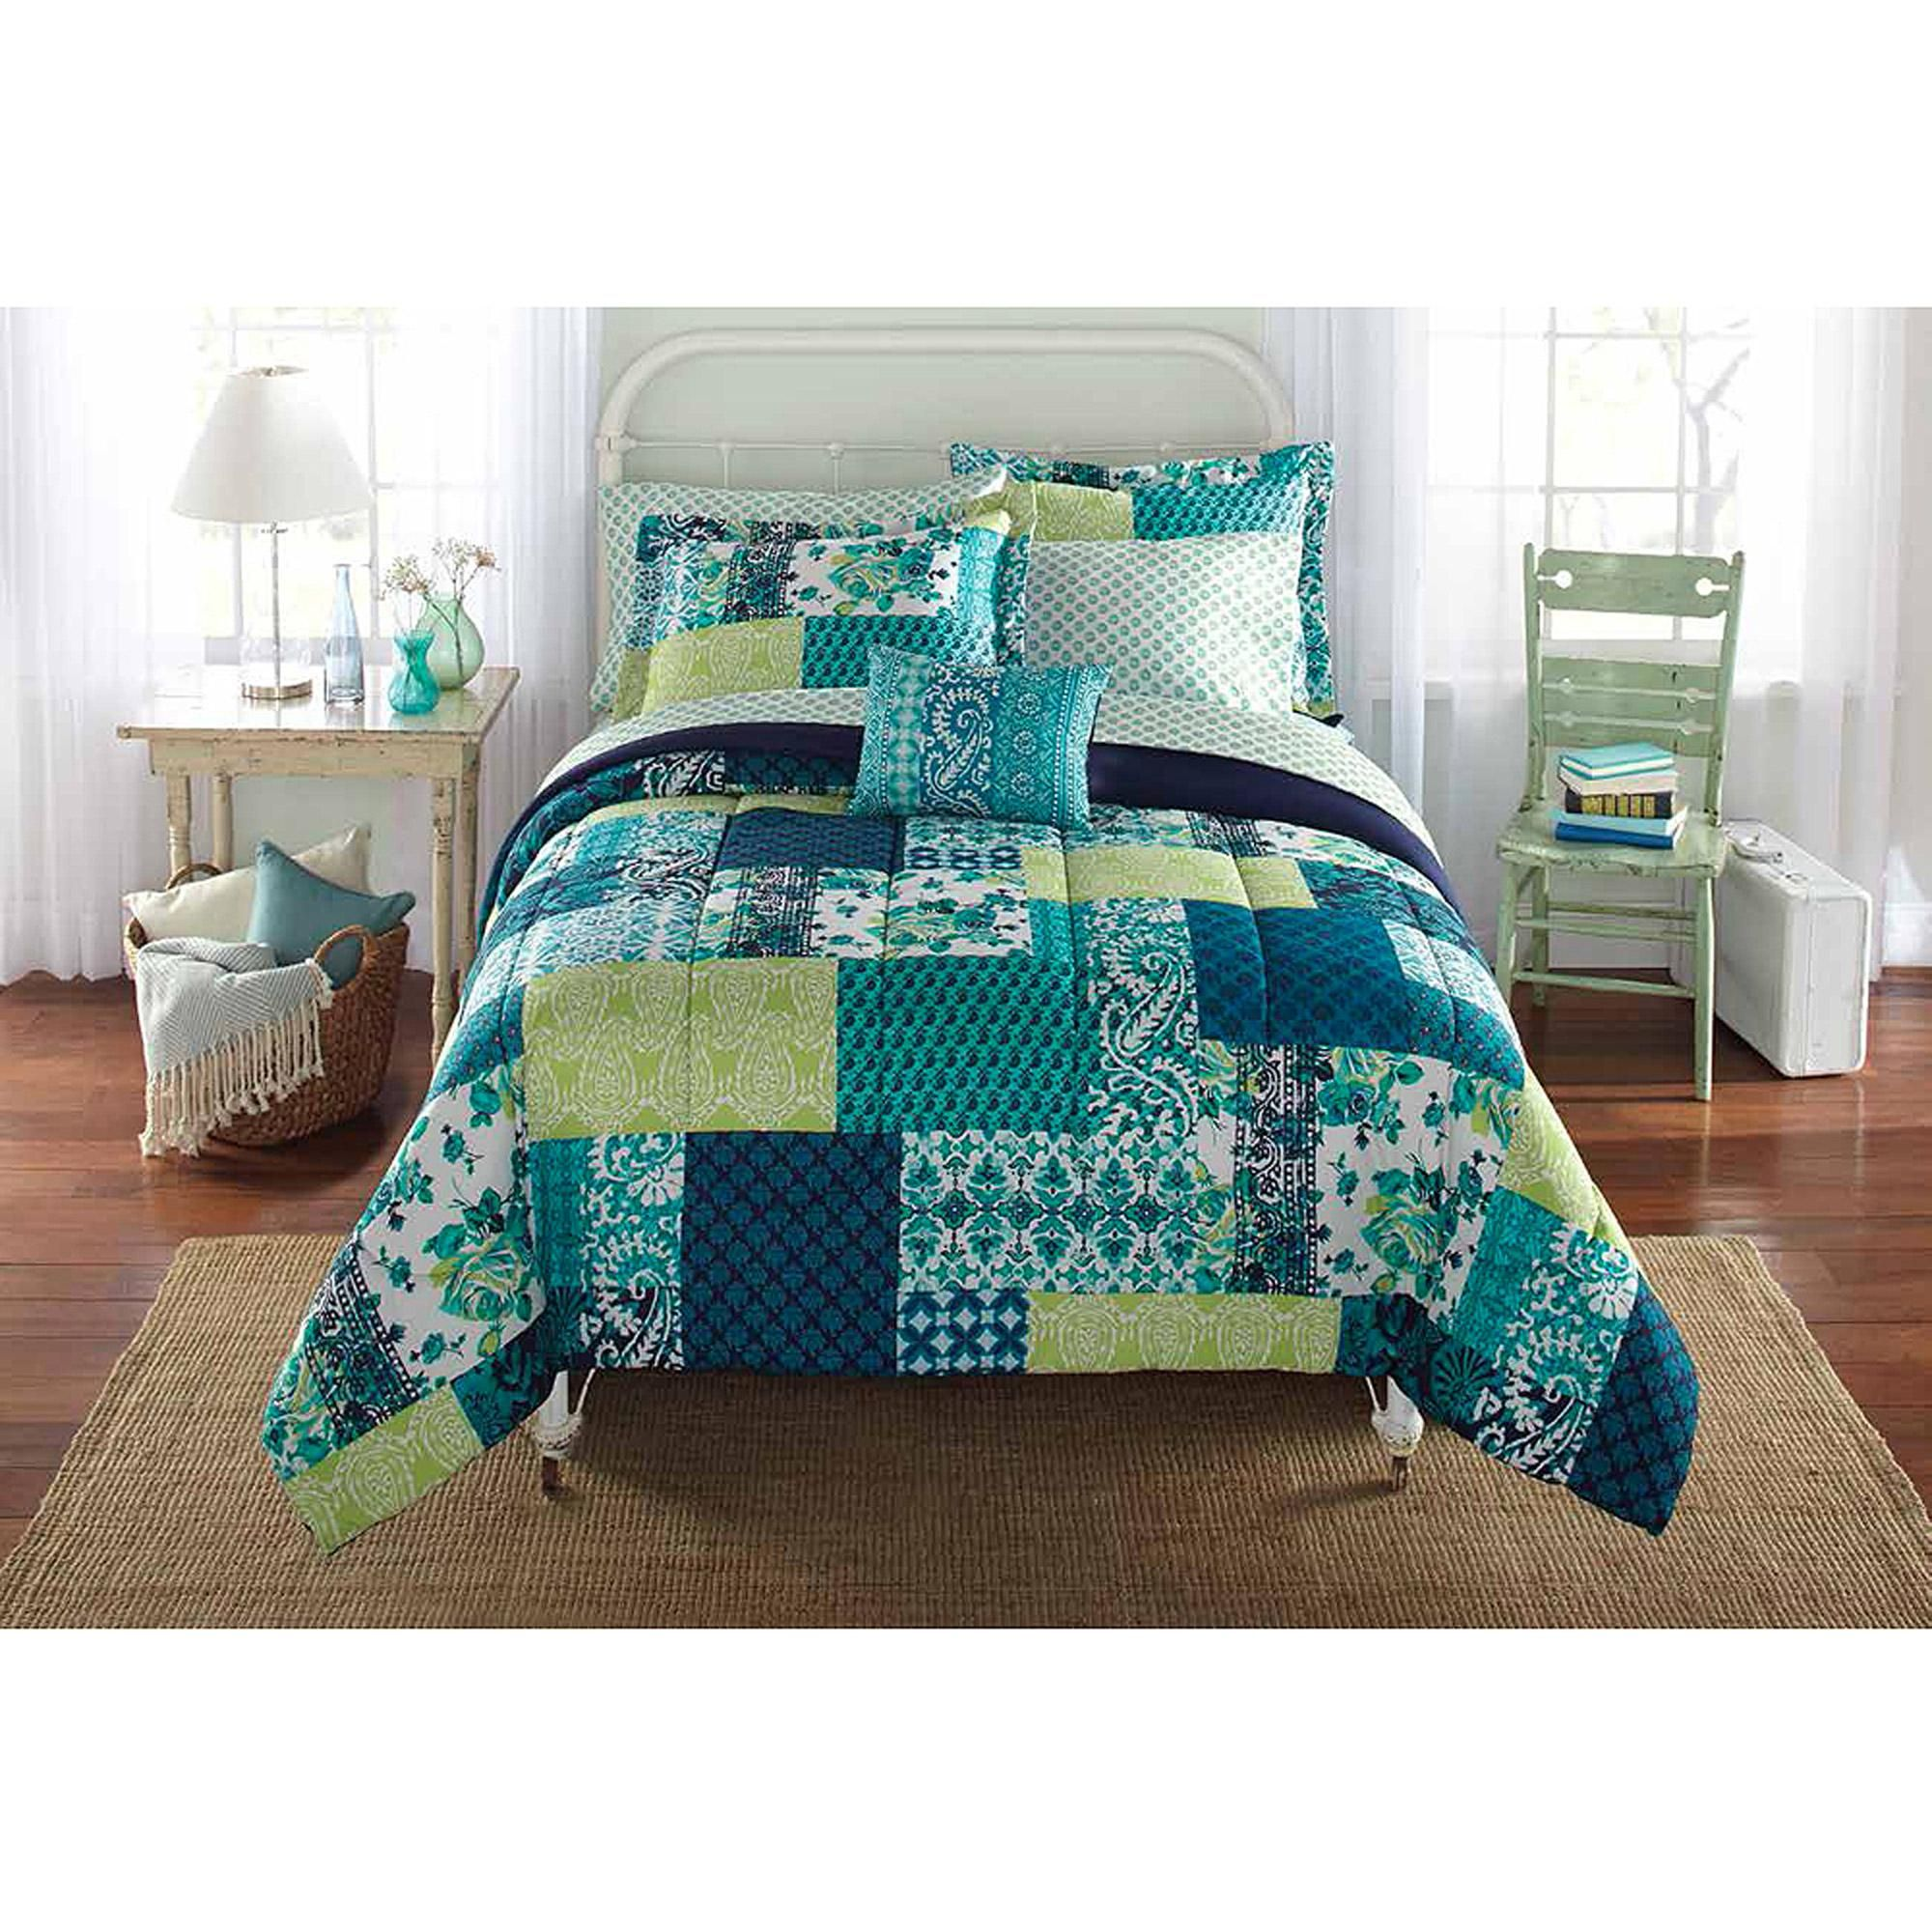 walmartcom bag feather brown apartment essence bed in comforter set becca cotton of solid size a and beddings teal white peacock home also mainstays sets black bedding full